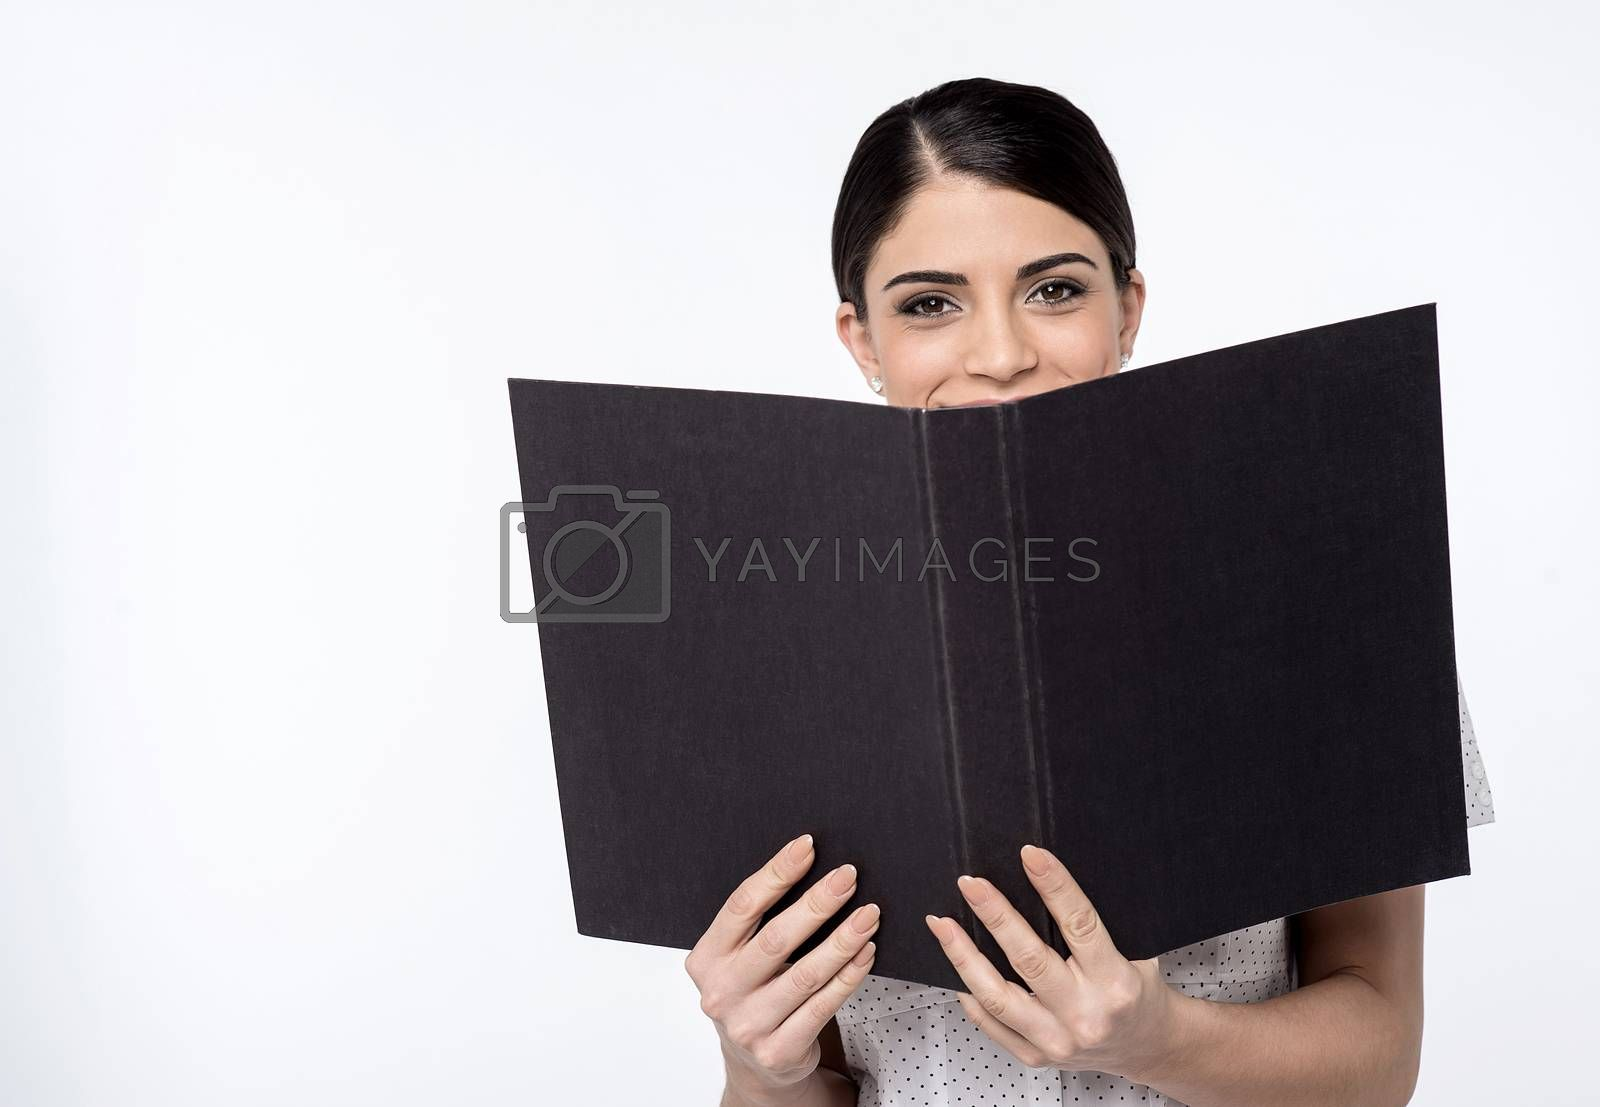 Image of a young female executive with open folder